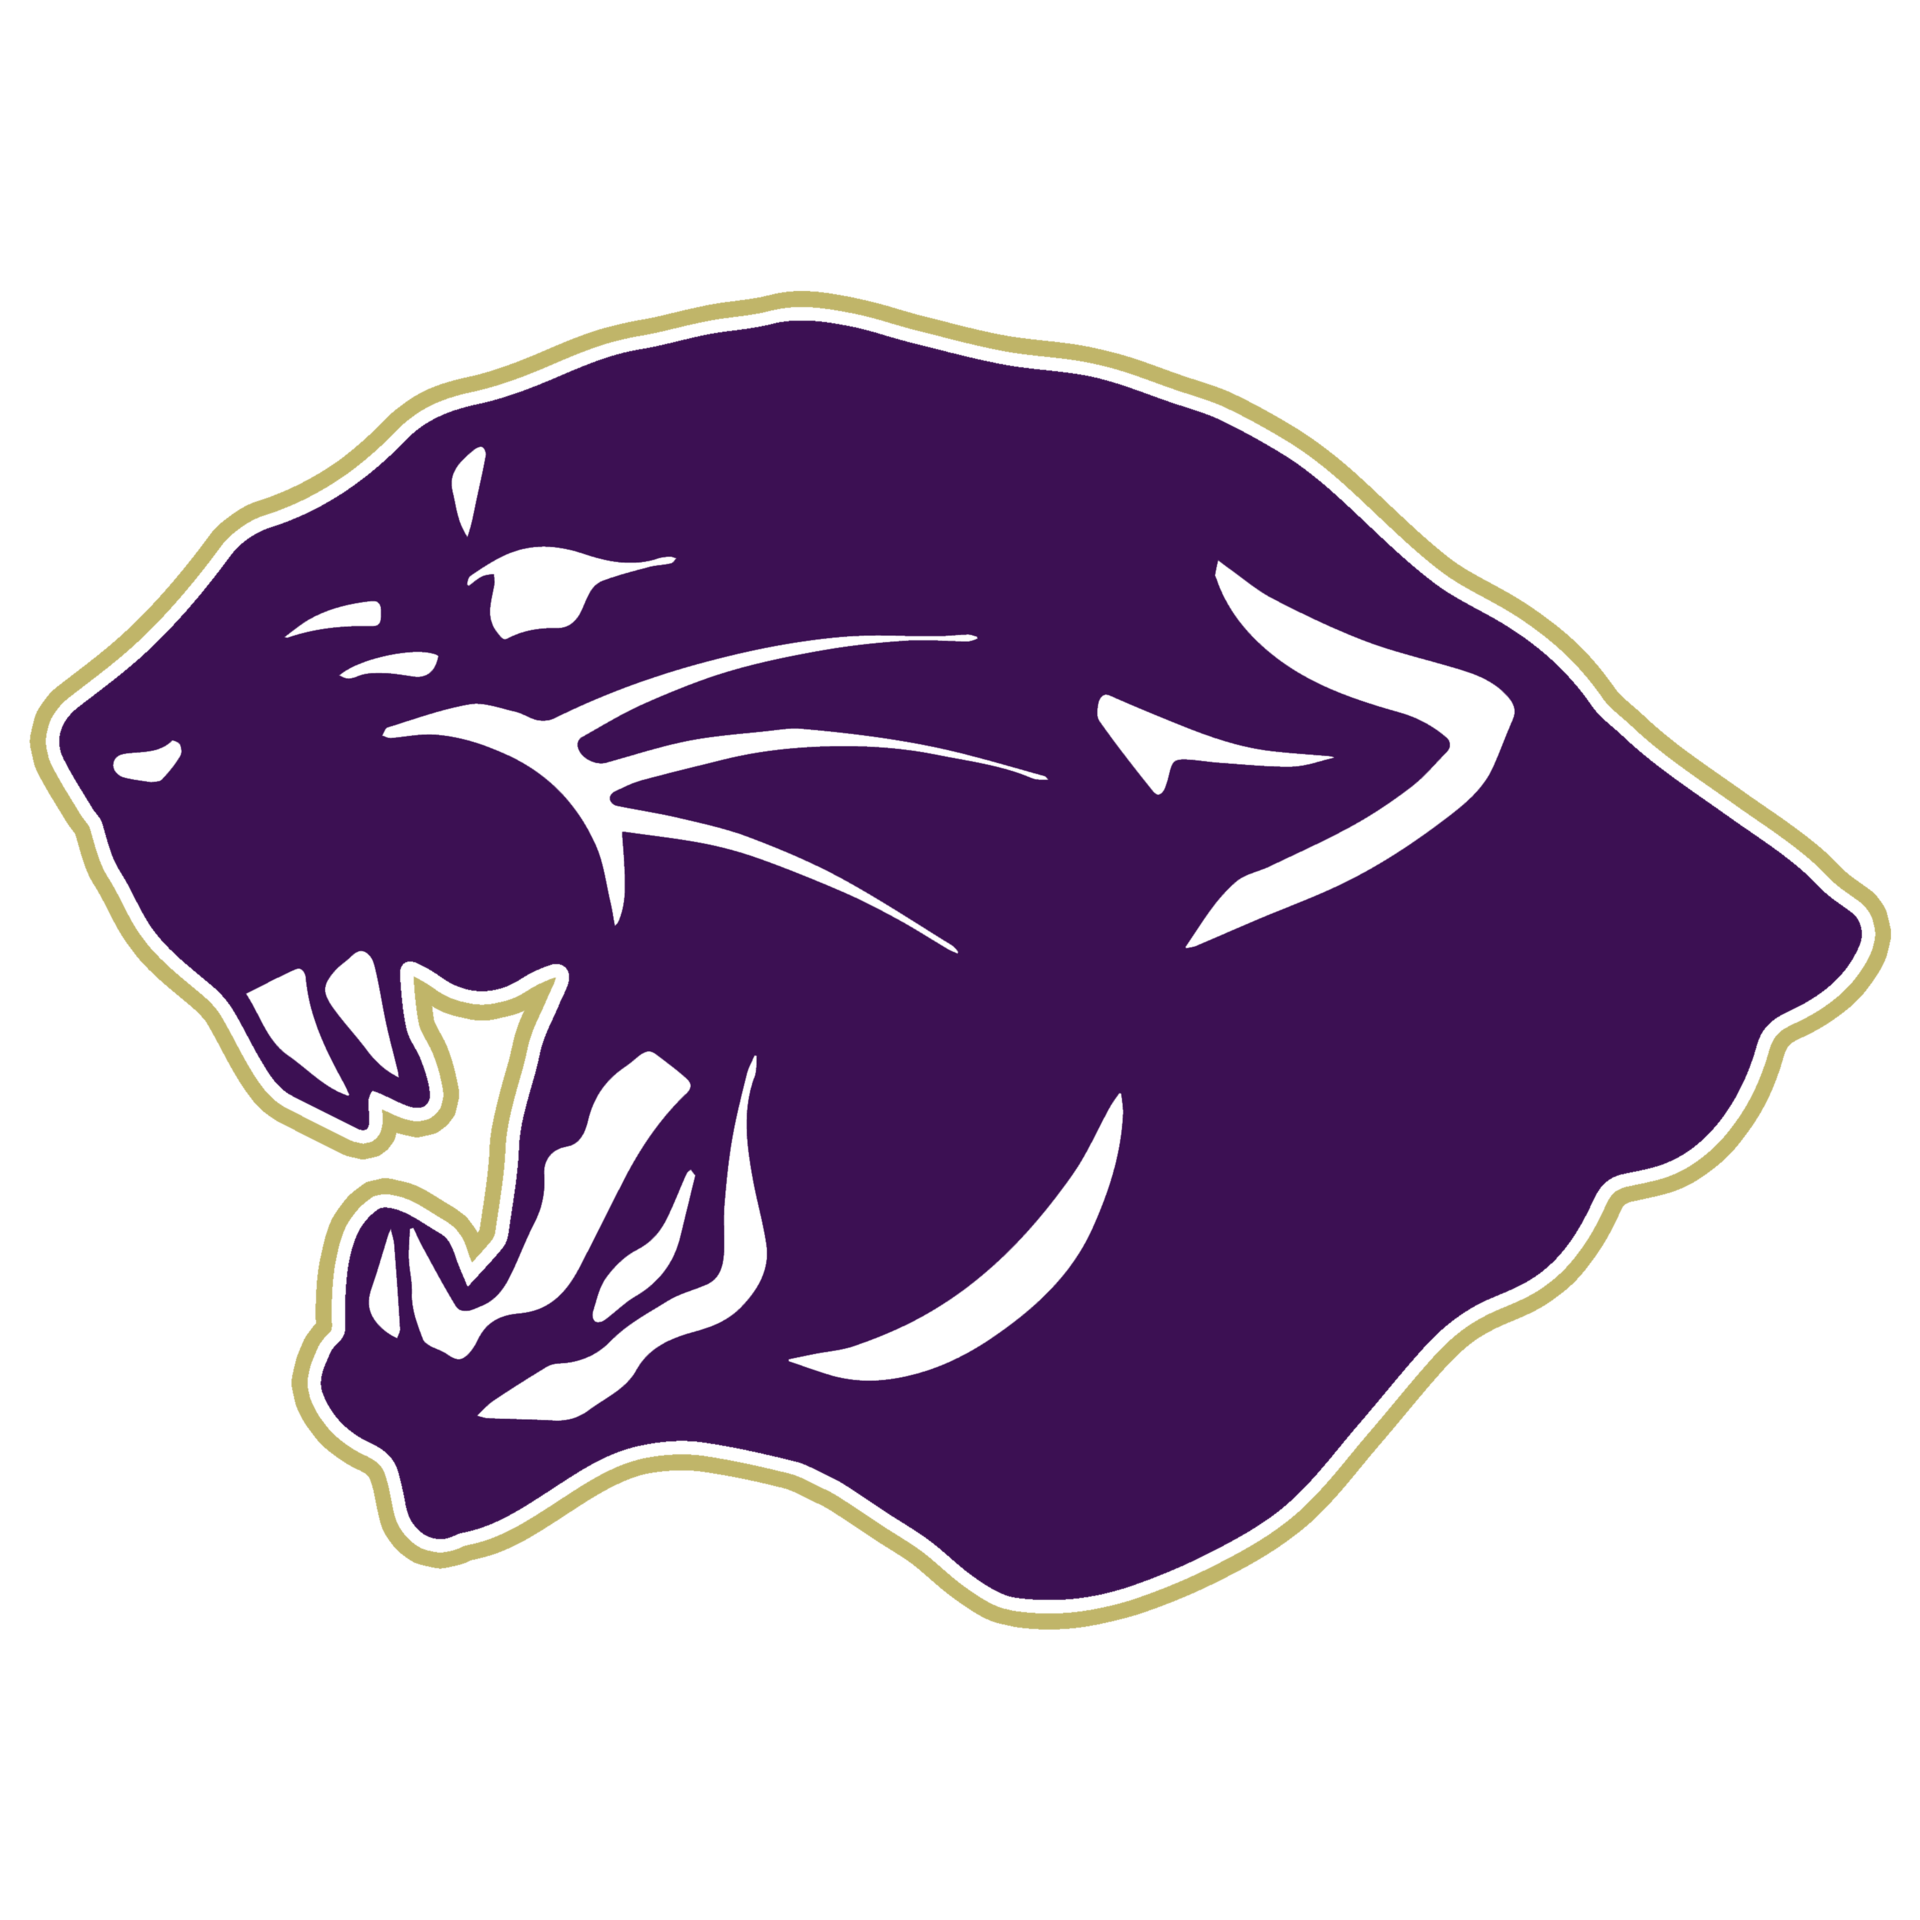 Purple Panther Head with Gold Outline